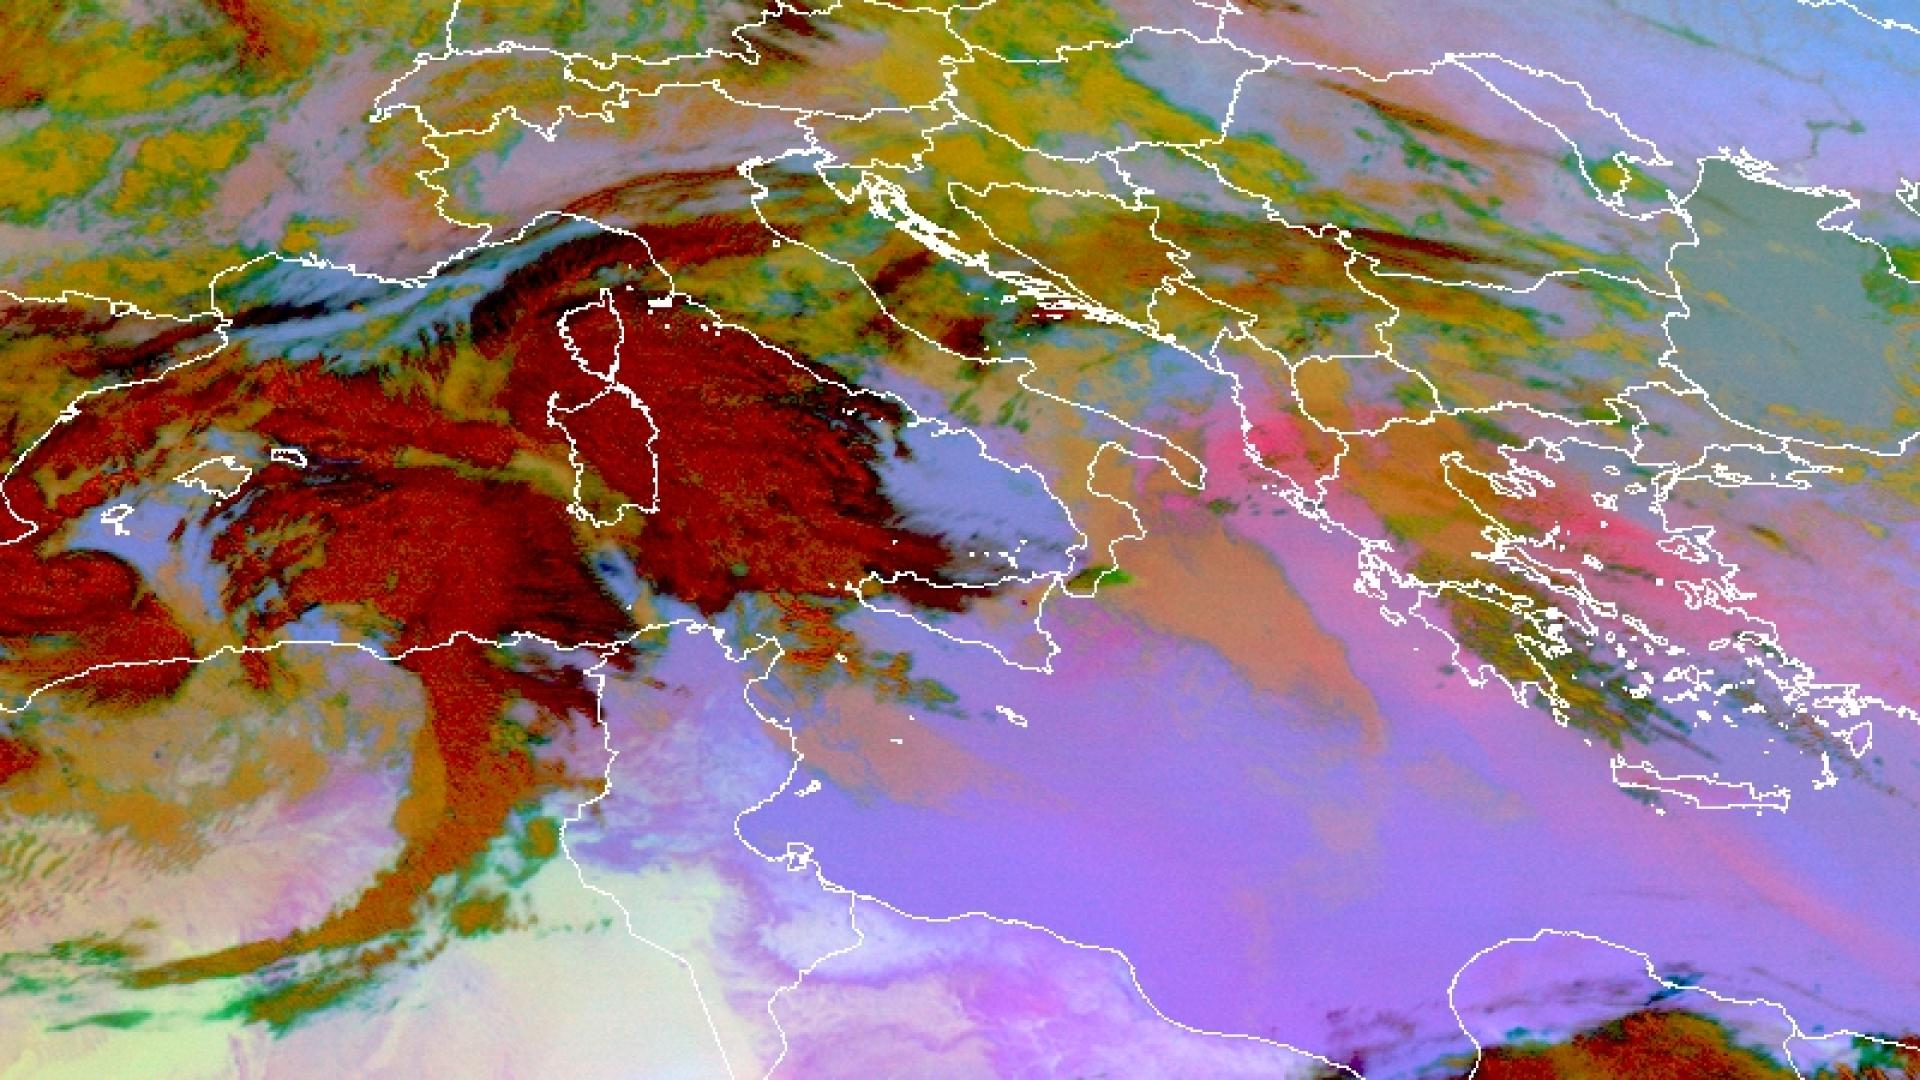 New lava flows & ash/SO2 plumes from Mount Etna